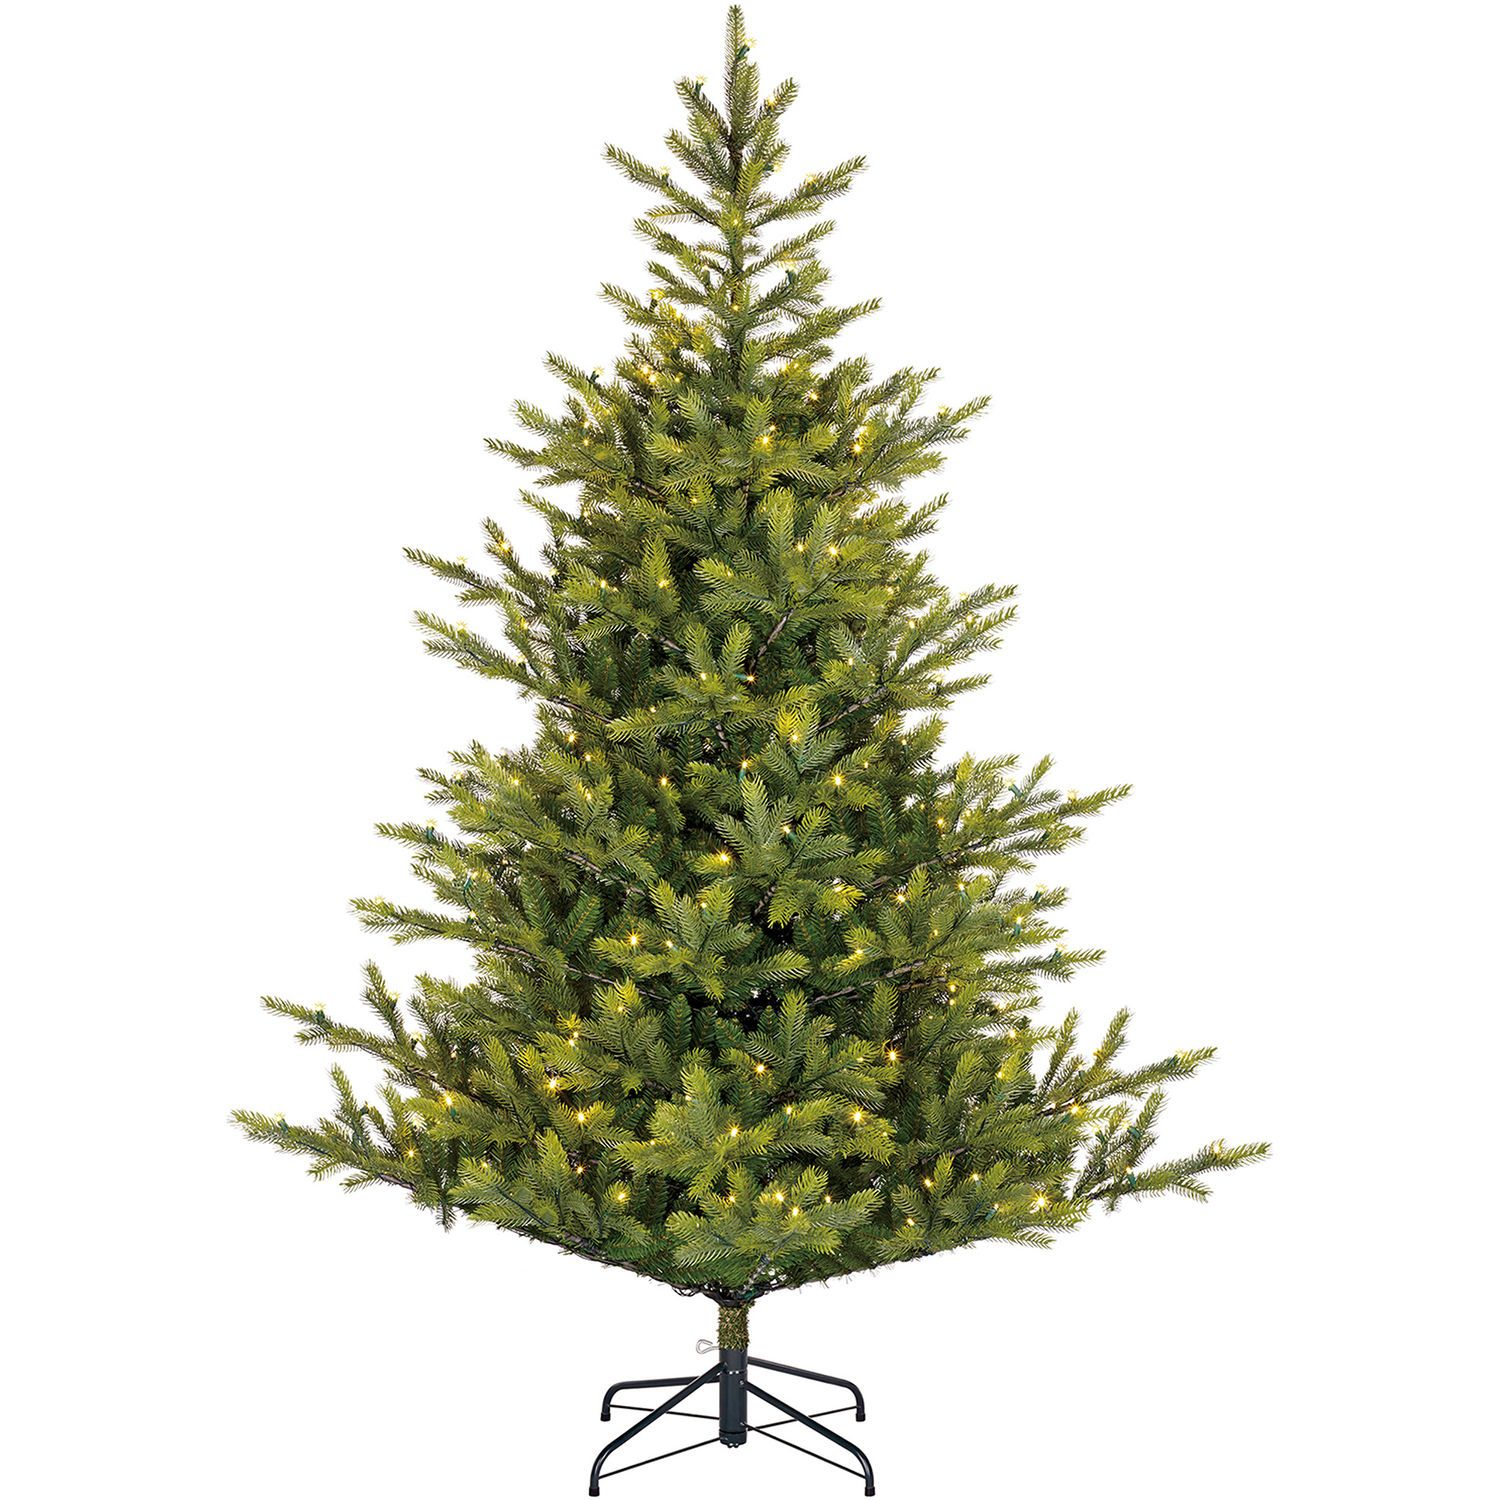 Easy Assemble Orford LED Christmas Tree 7ft, TK Maxx